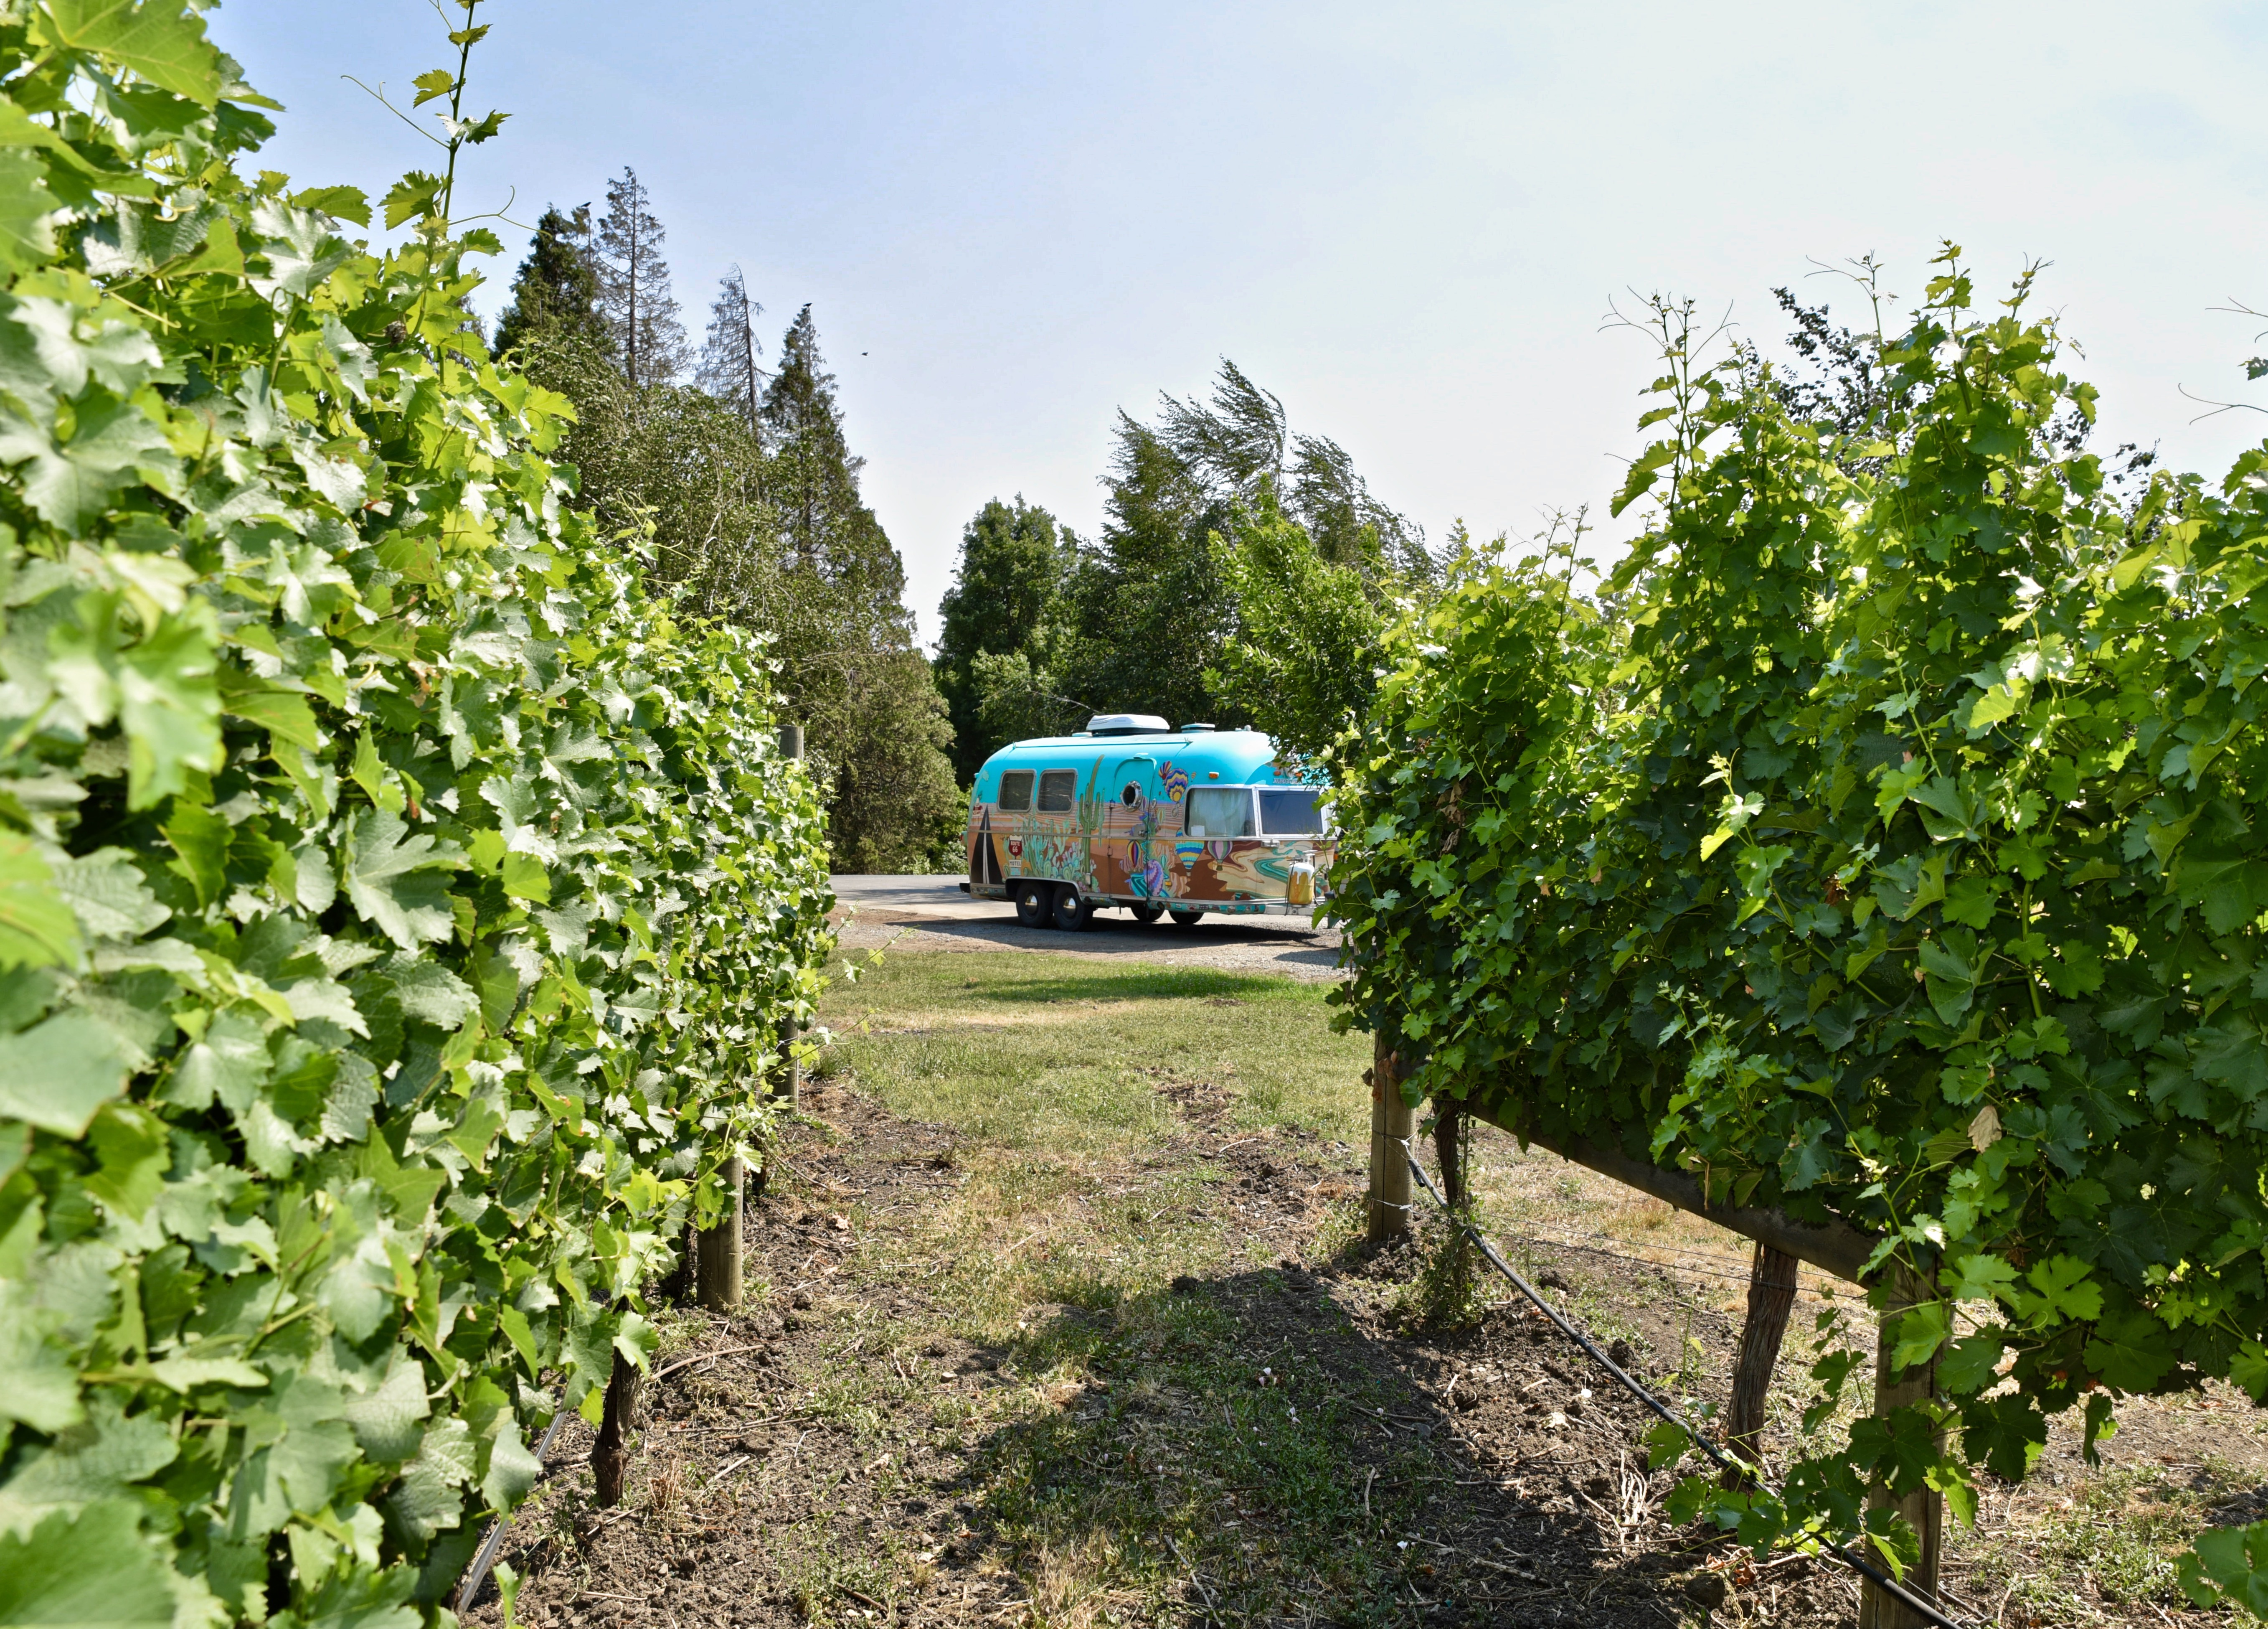 View of painted airstream through a row of vines.